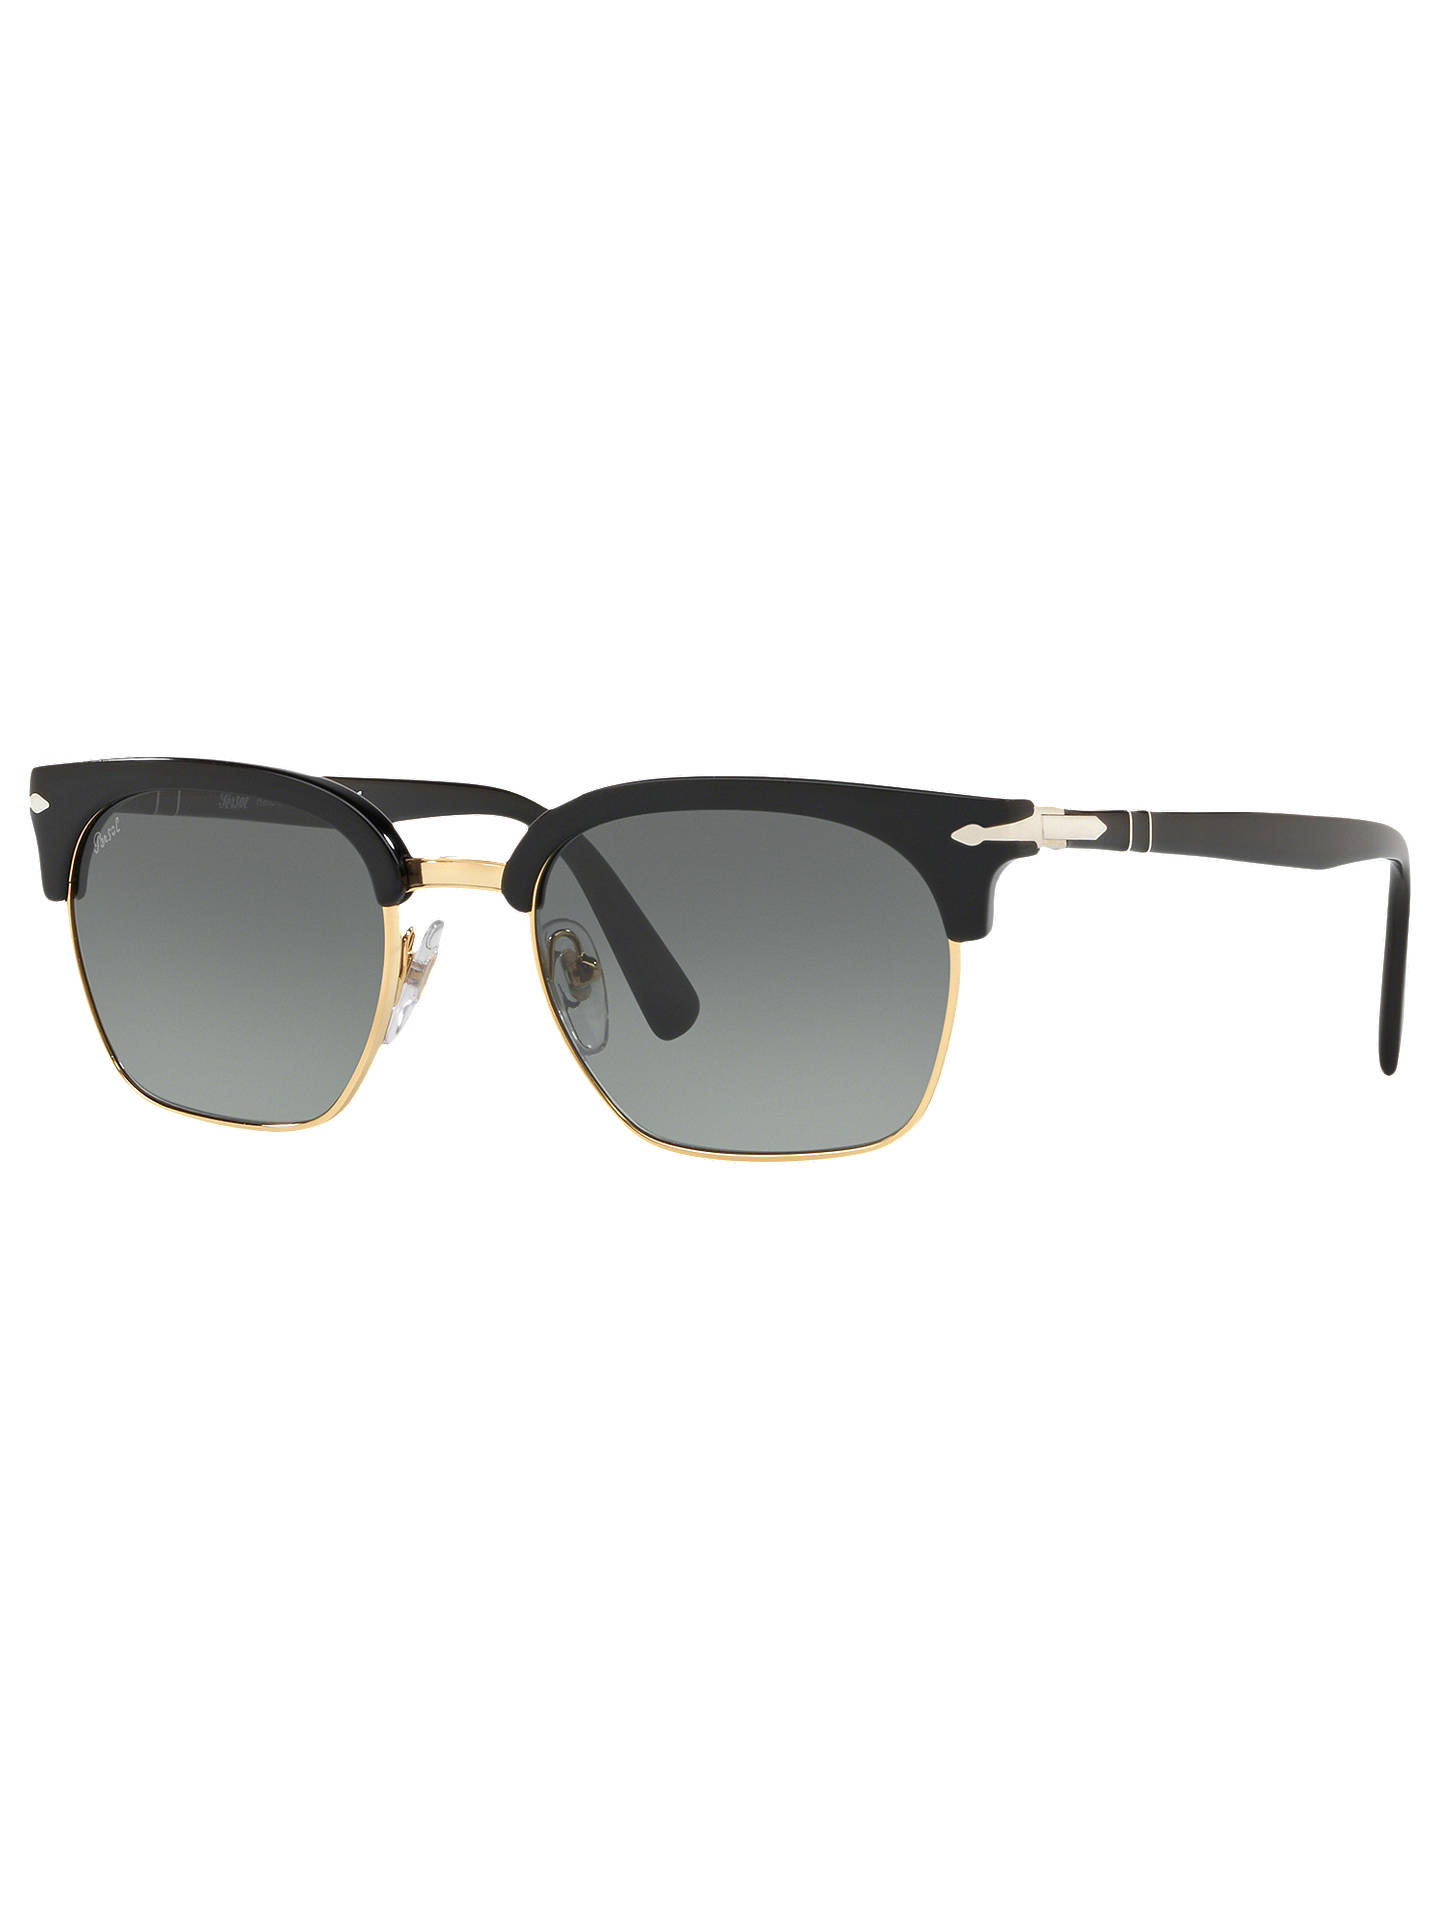 351e58b583 Persol PO3199S Unisex Polarised Square Sunglasses at John Lewis ...